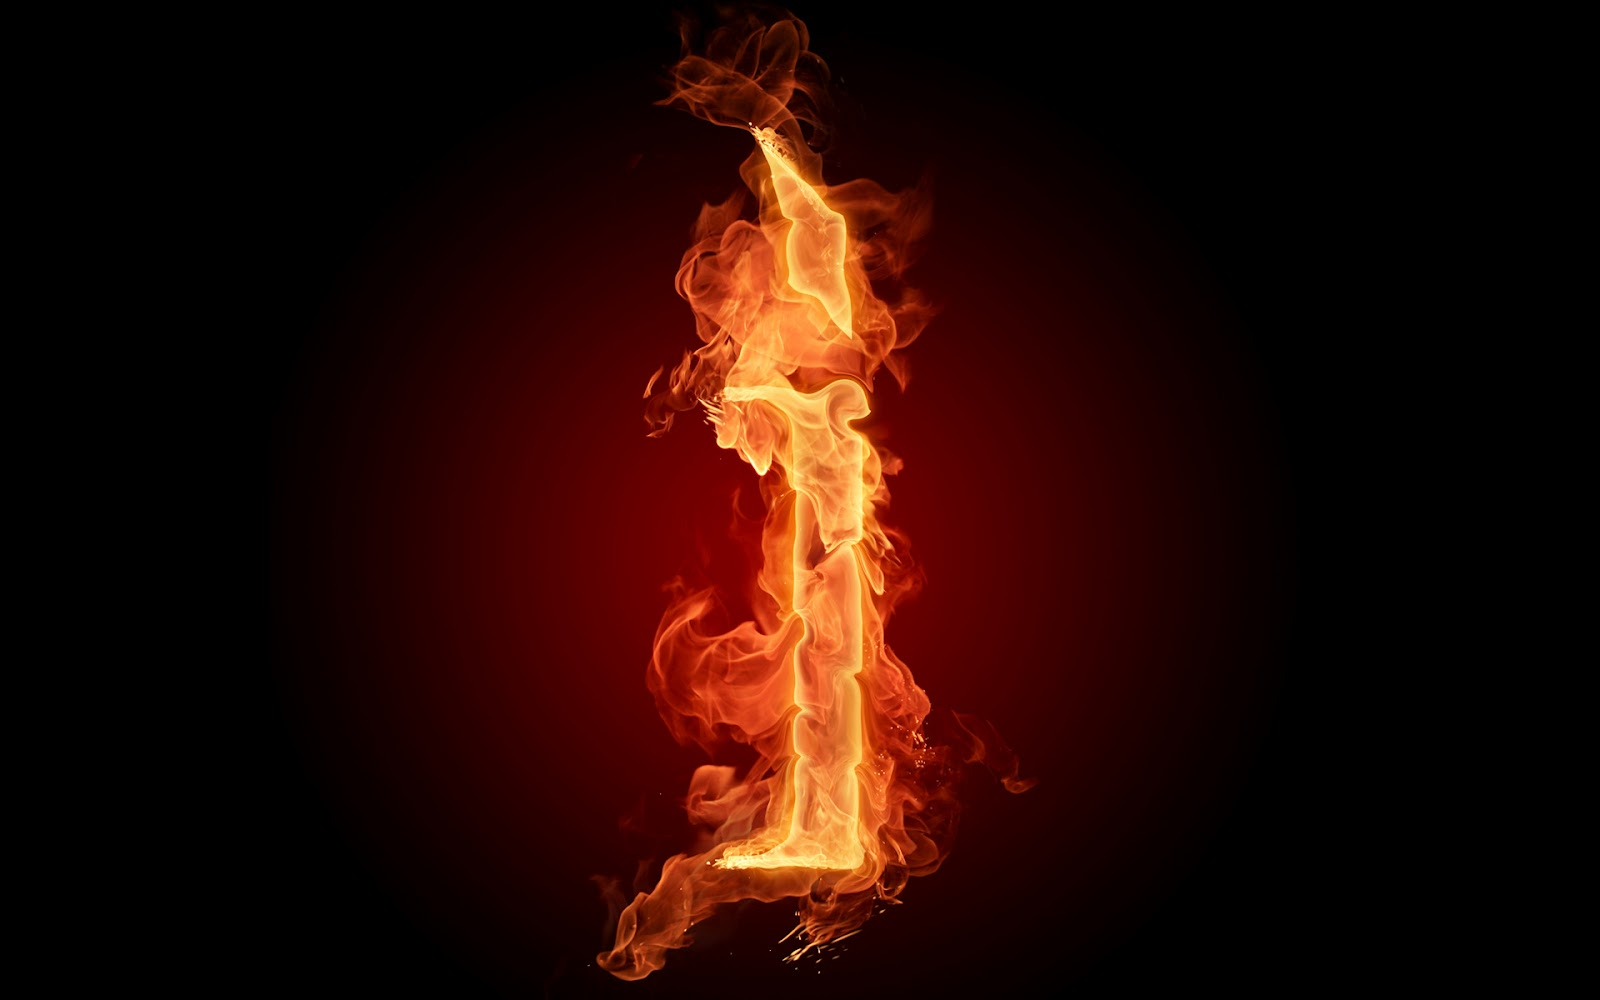 http://2.bp.blogspot.com/-yB326edHCoo/T0udYkCk5pI/AAAAAAAAM9A/xOZBNAi7wYU/s1600/the-fiery-english-alphabet-picture-i_1920x1200_73623.jpg